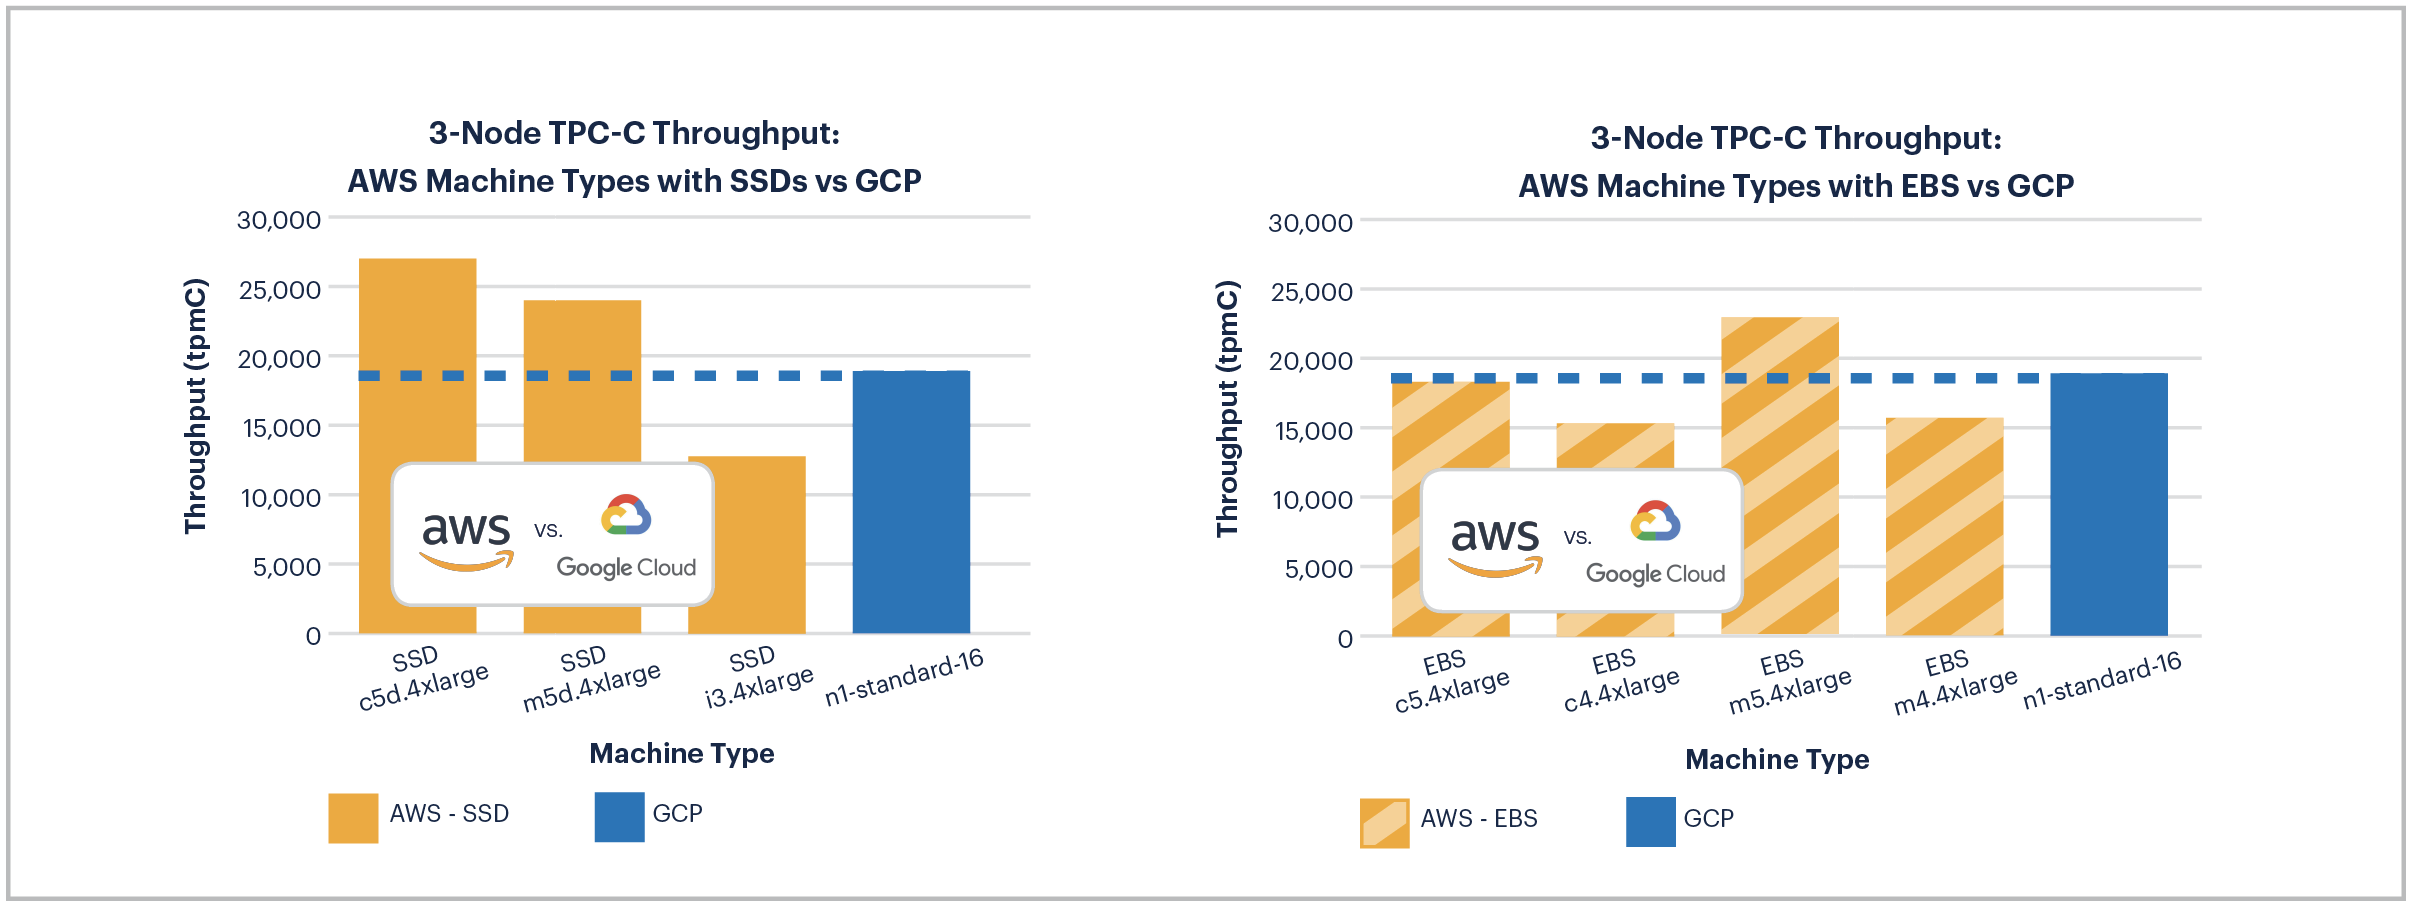 AWS vs GCP: 3-Node TPC-C Performance on SSD and EBS Machines